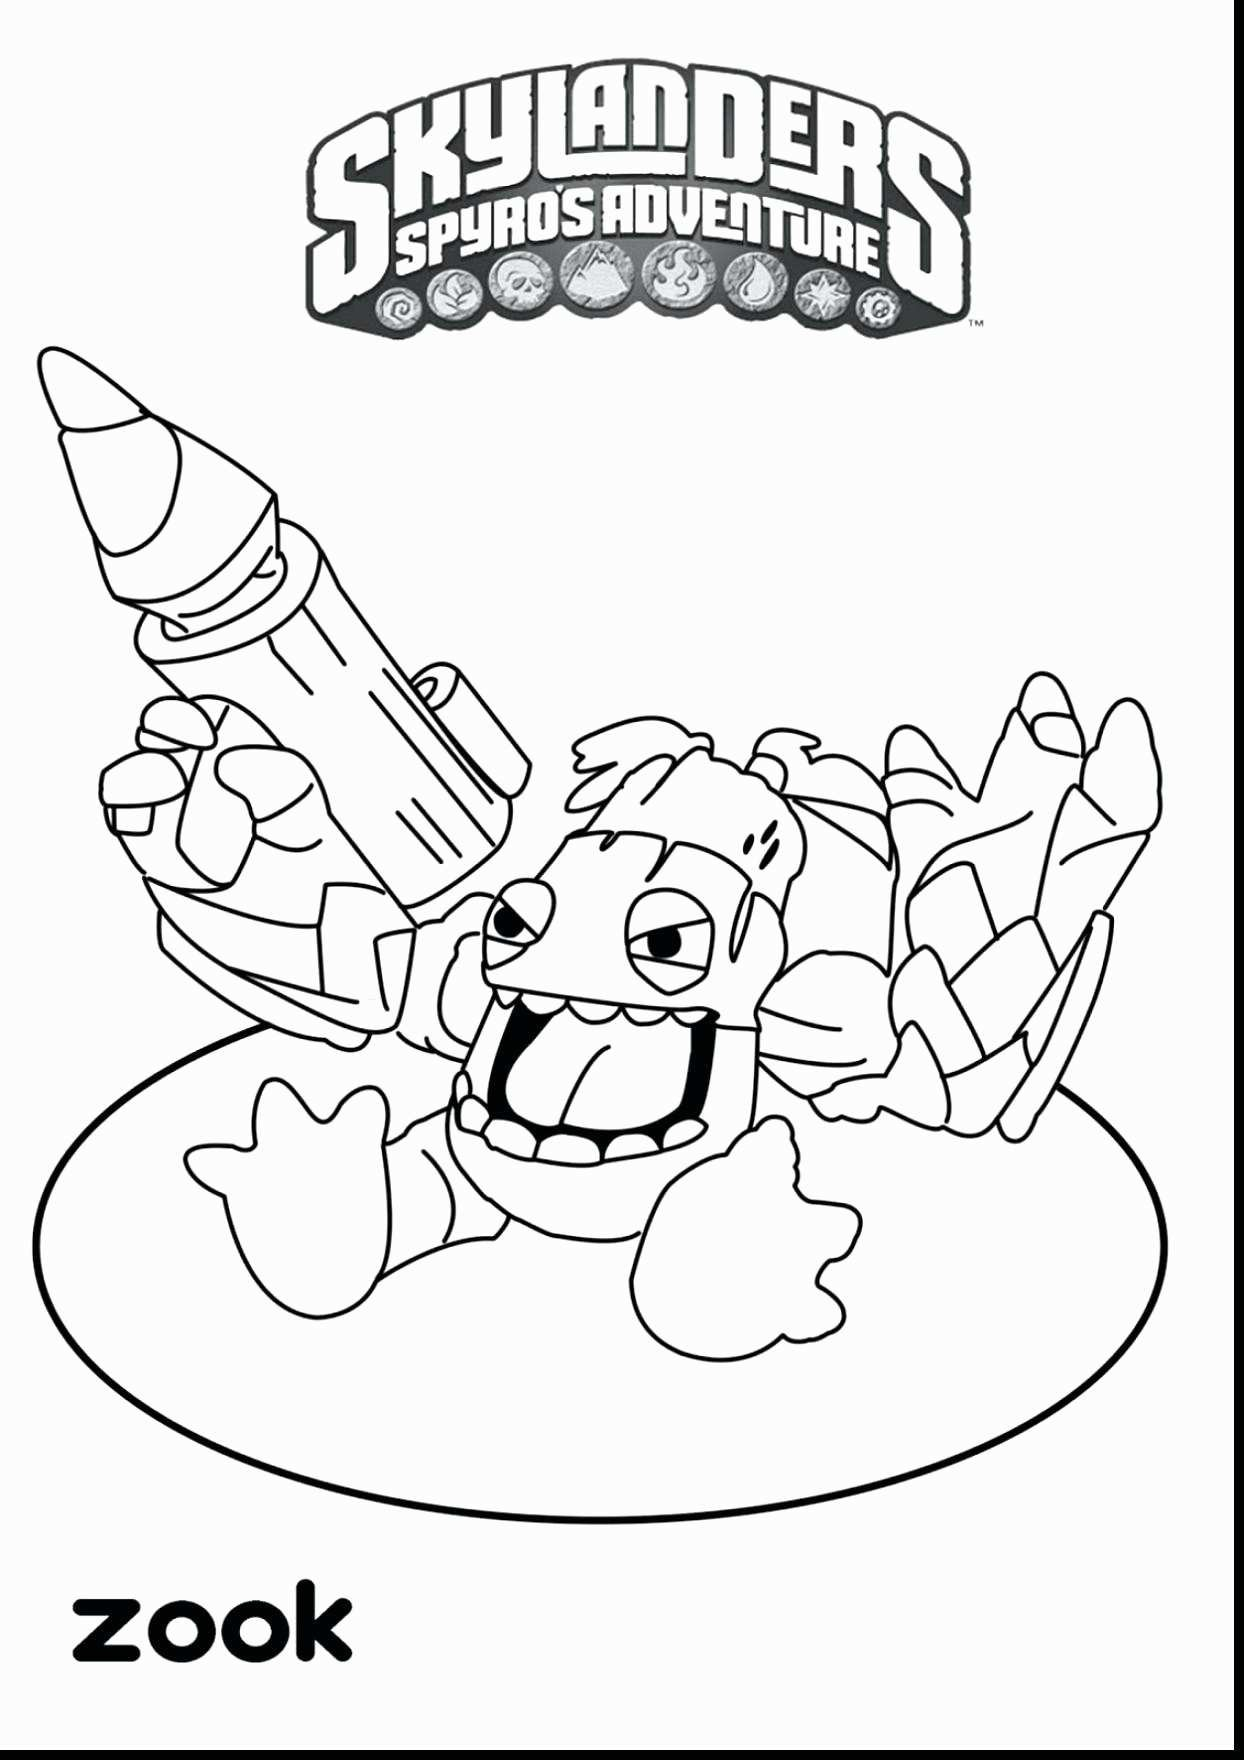 Joshua Fought The Battle Of Jericho Coloring Page Coloring Pages For Adults With Hidd Best Coloring Pages Collection